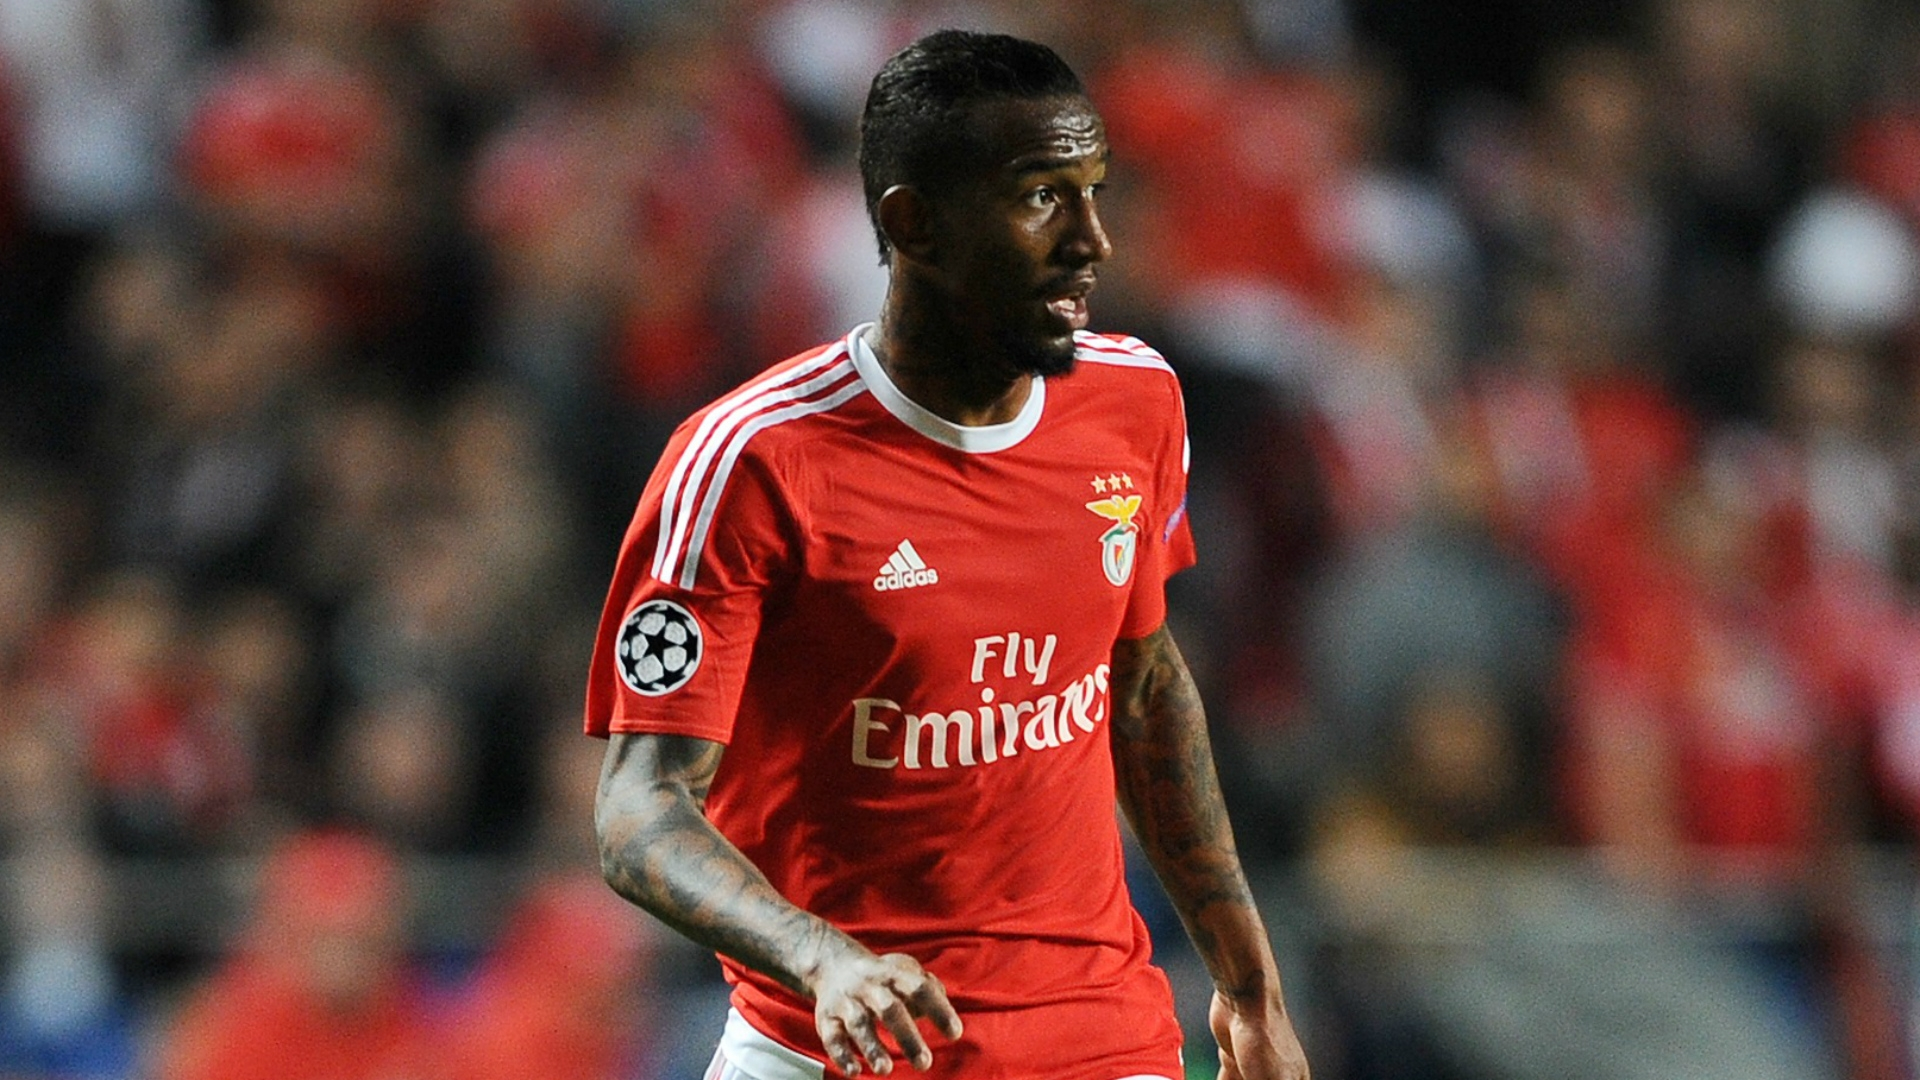 , Talisca was said to be in negotiations to join United or return to Portugal's Benfica.